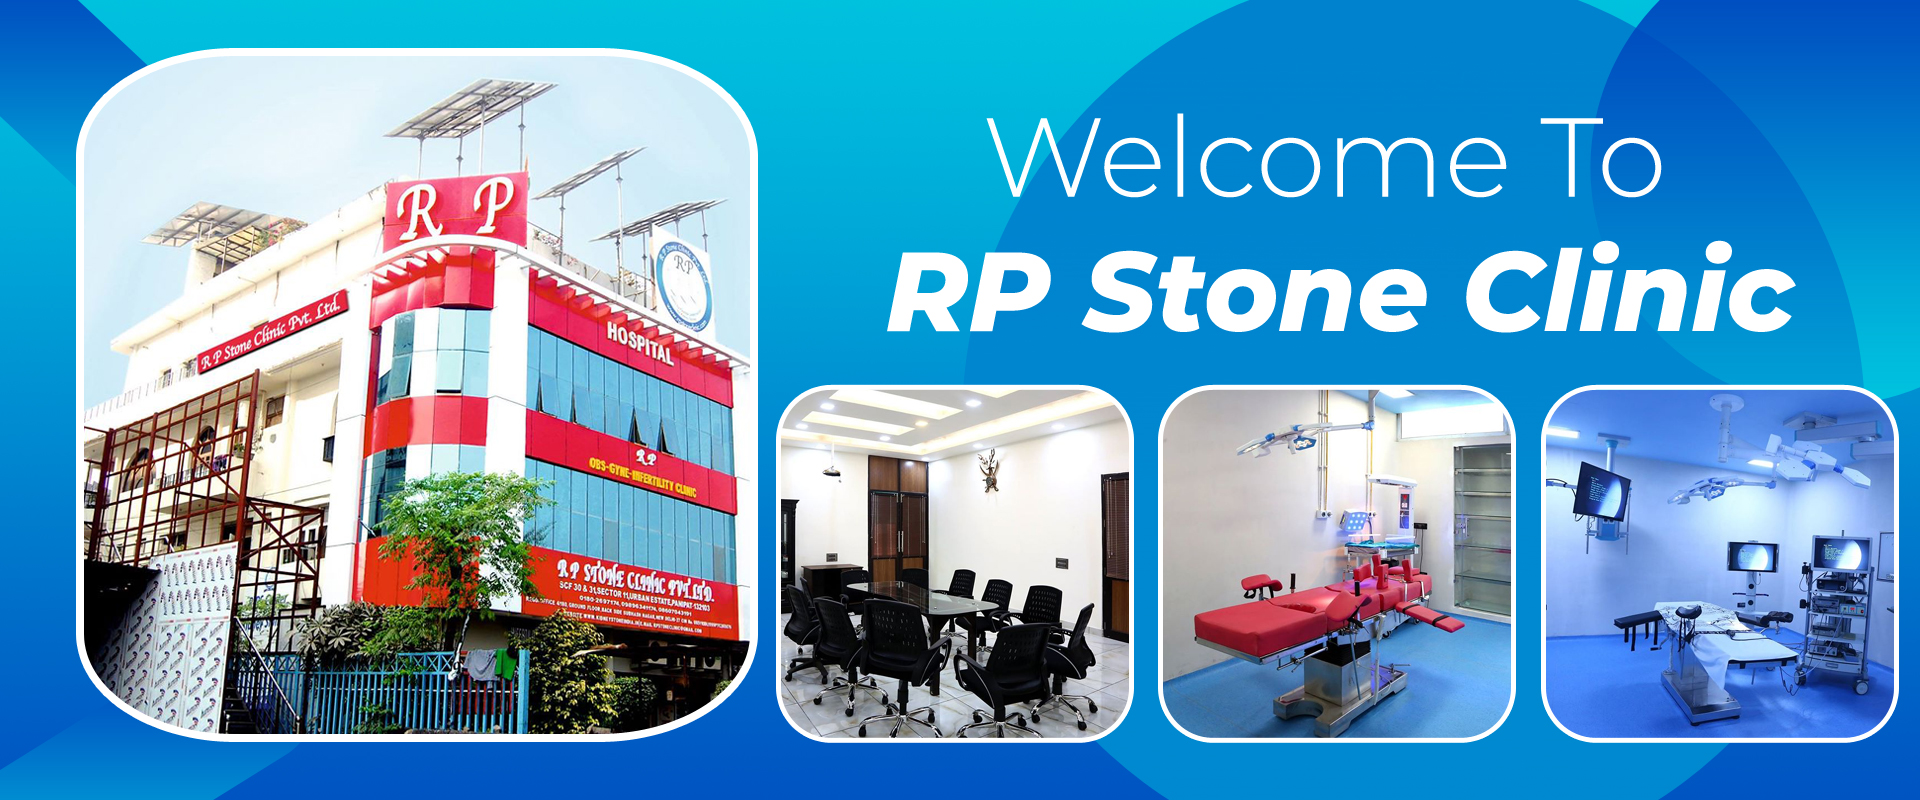 Welcome To R.P Stone Clinic